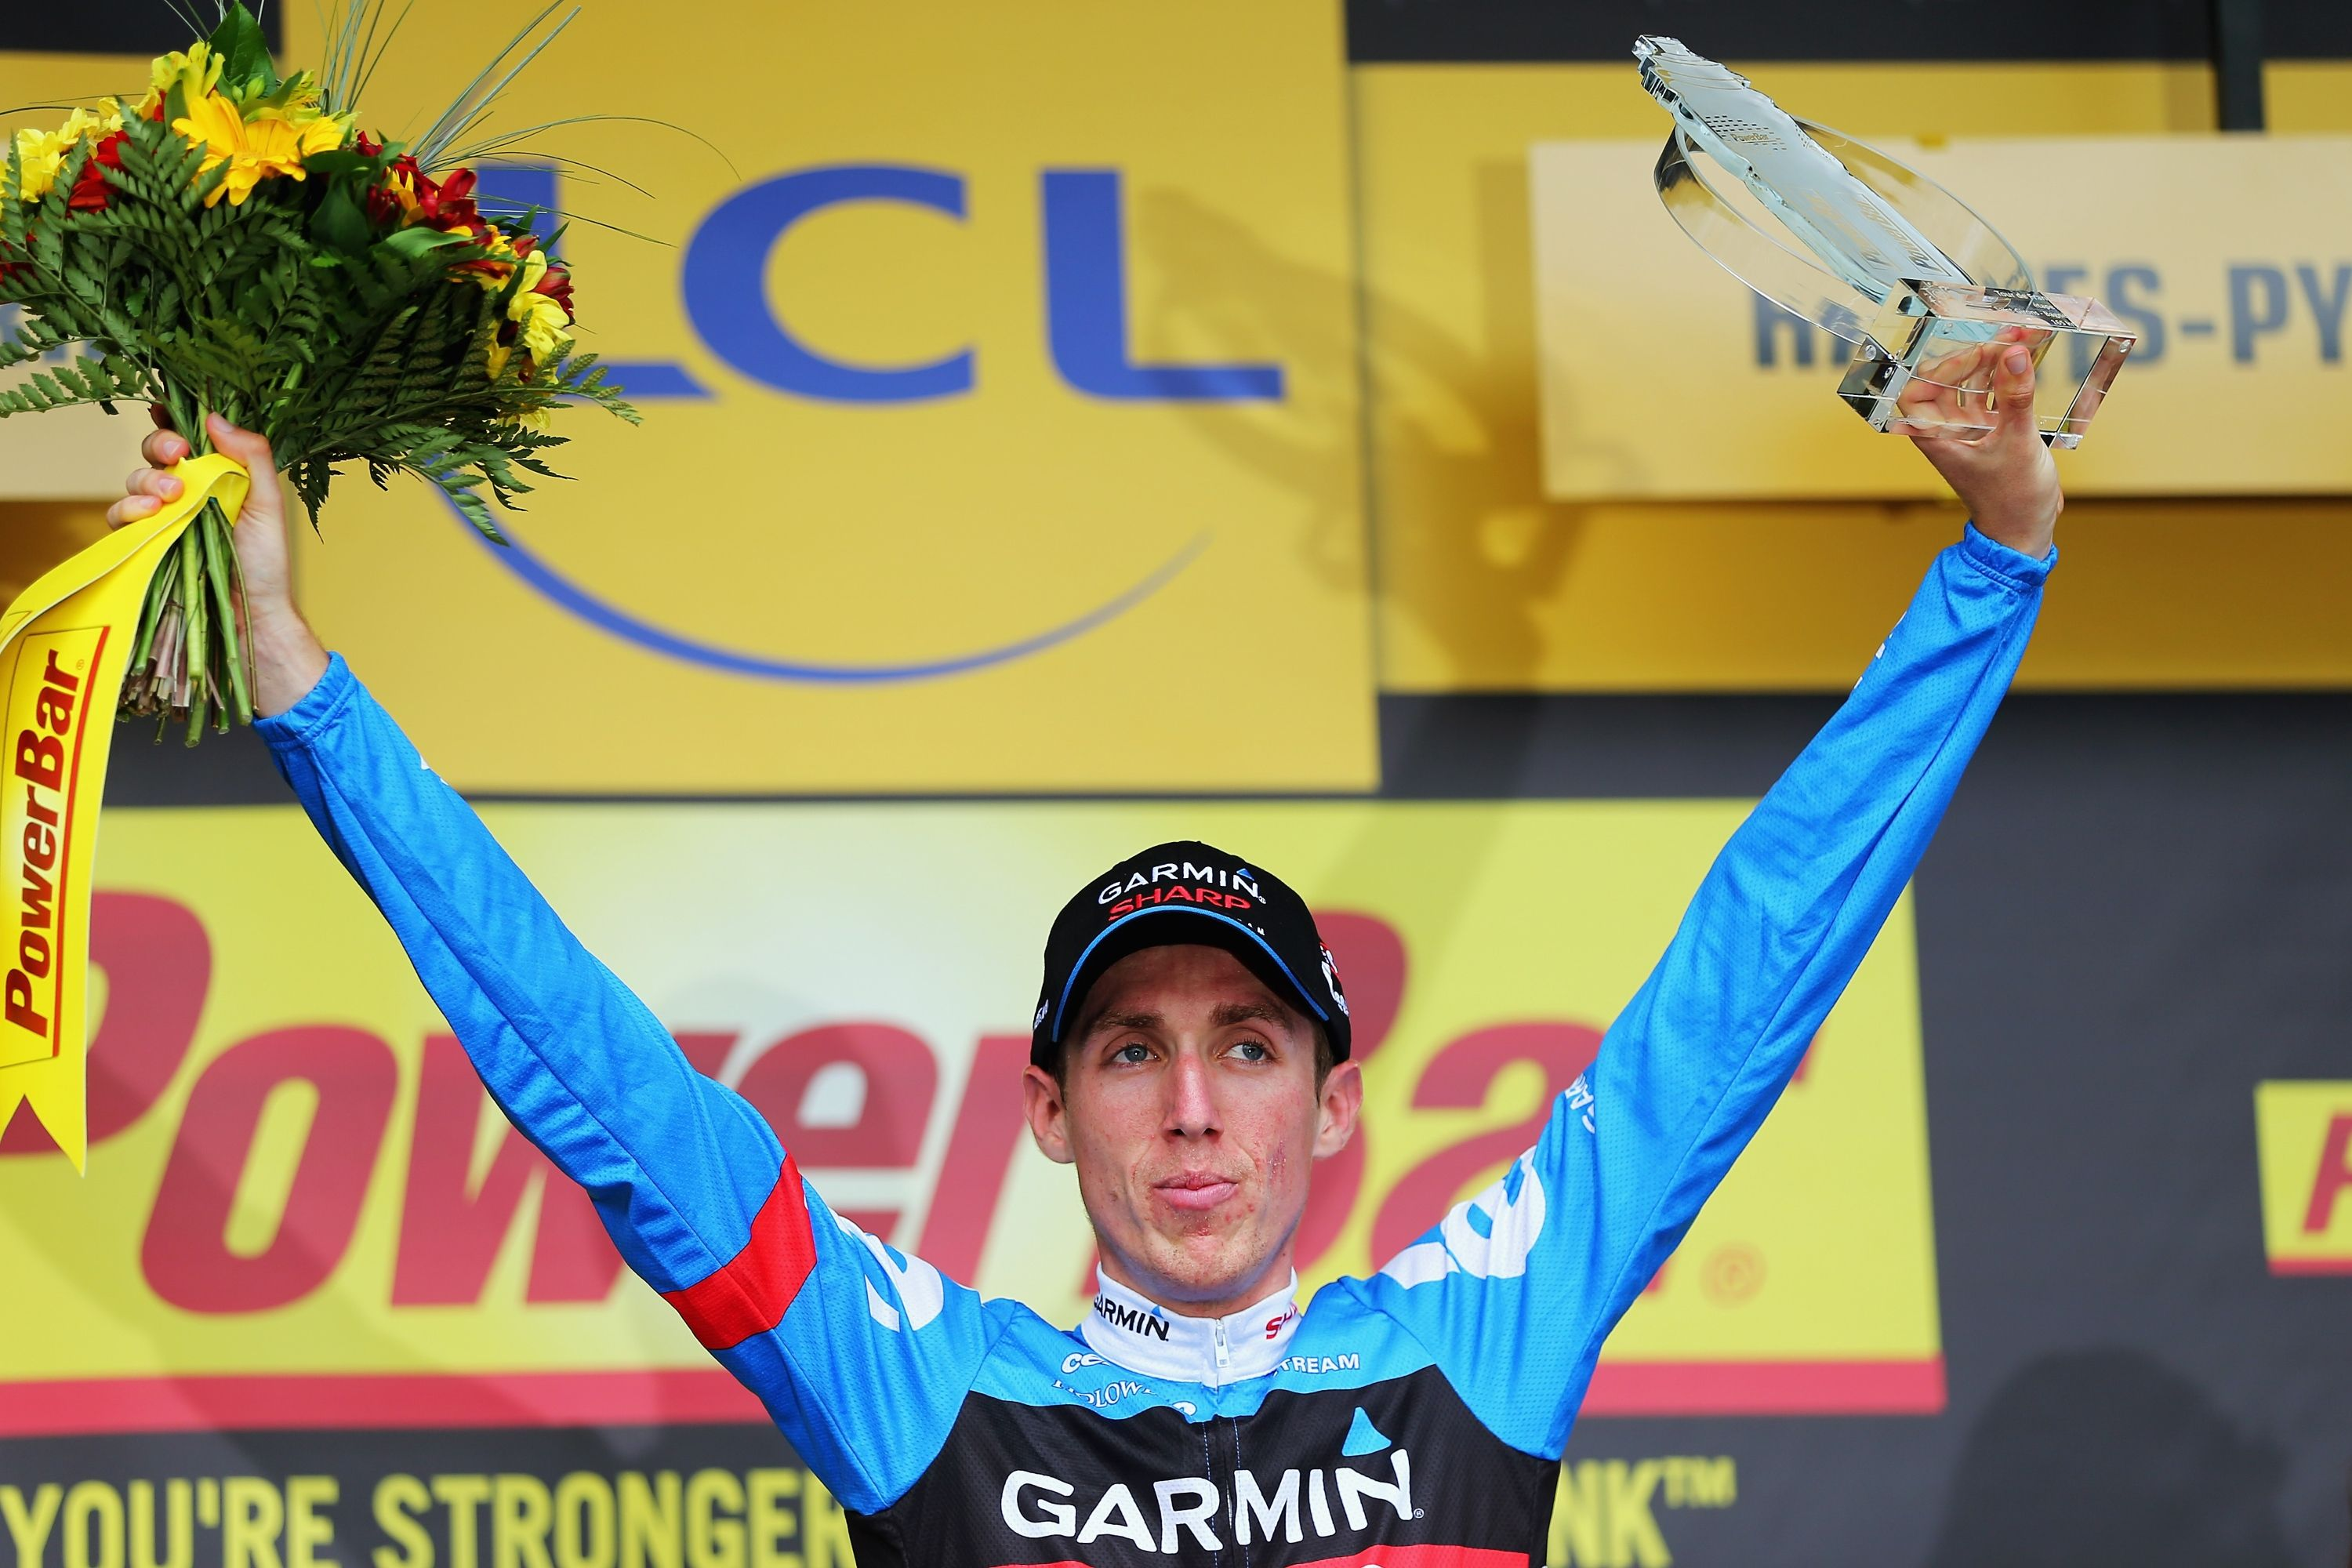 SAINT-GIRONS, FRANCE - JULY 07: Dan Martin of Ireland and Garmin - Sharp cewlebrates winning stage nine of the 2013 Tour de France, a 168.5km road stage from Saint-Girons to Bagneres-de-Bigorre, on July 7, 2013 in Saint-Girons, France. (Photo by Bryn Lennon/Getty Images)